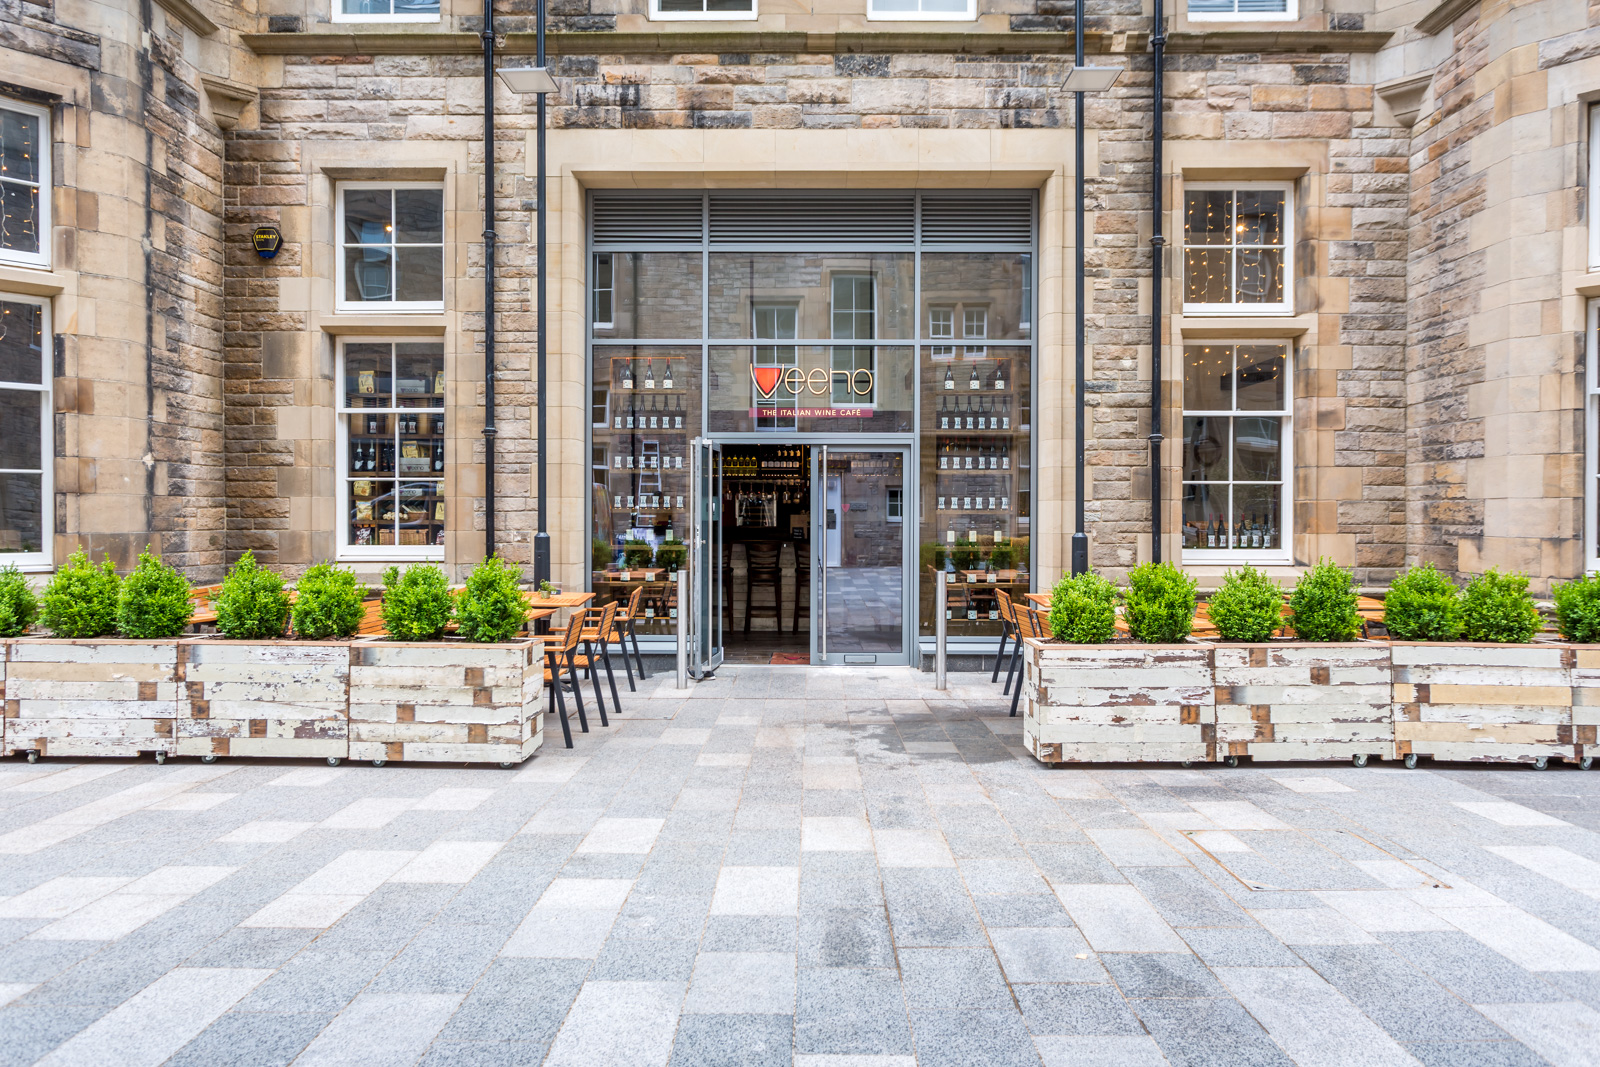 architectural-event-reatil-photography-edinburgh-glasgow-7.jpg